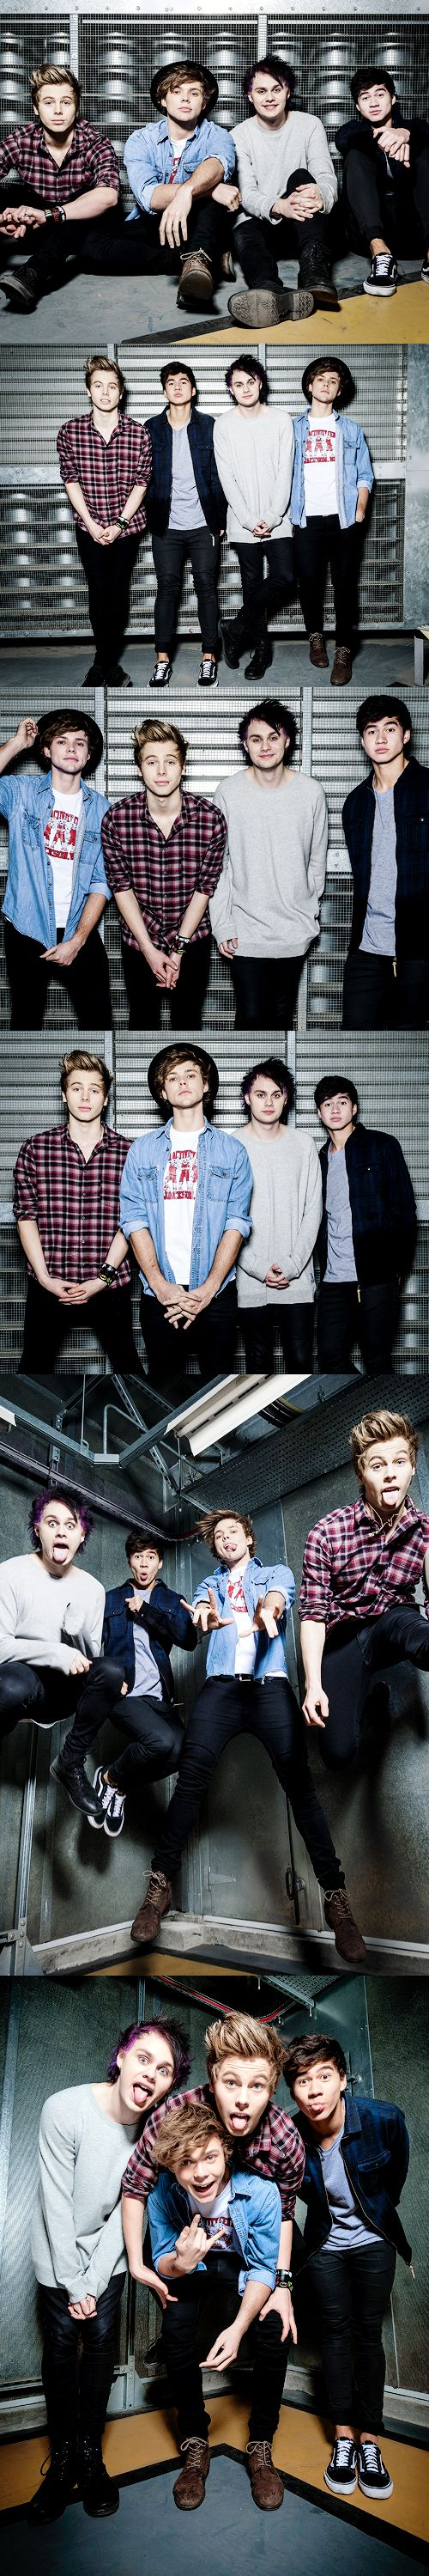 ATTENTION ALL 5SOS FAM MEMBERS.  As the new broken scene is coming up, fans back here in india kinda feel left out...becoz they've been on tour EVERYWHERE except here. We feel bad coz we don't think we have a chance to meet them :(  Pls Help. In some way or the other.   To the 5SOSFAM  from: the 5SOSFAM #India